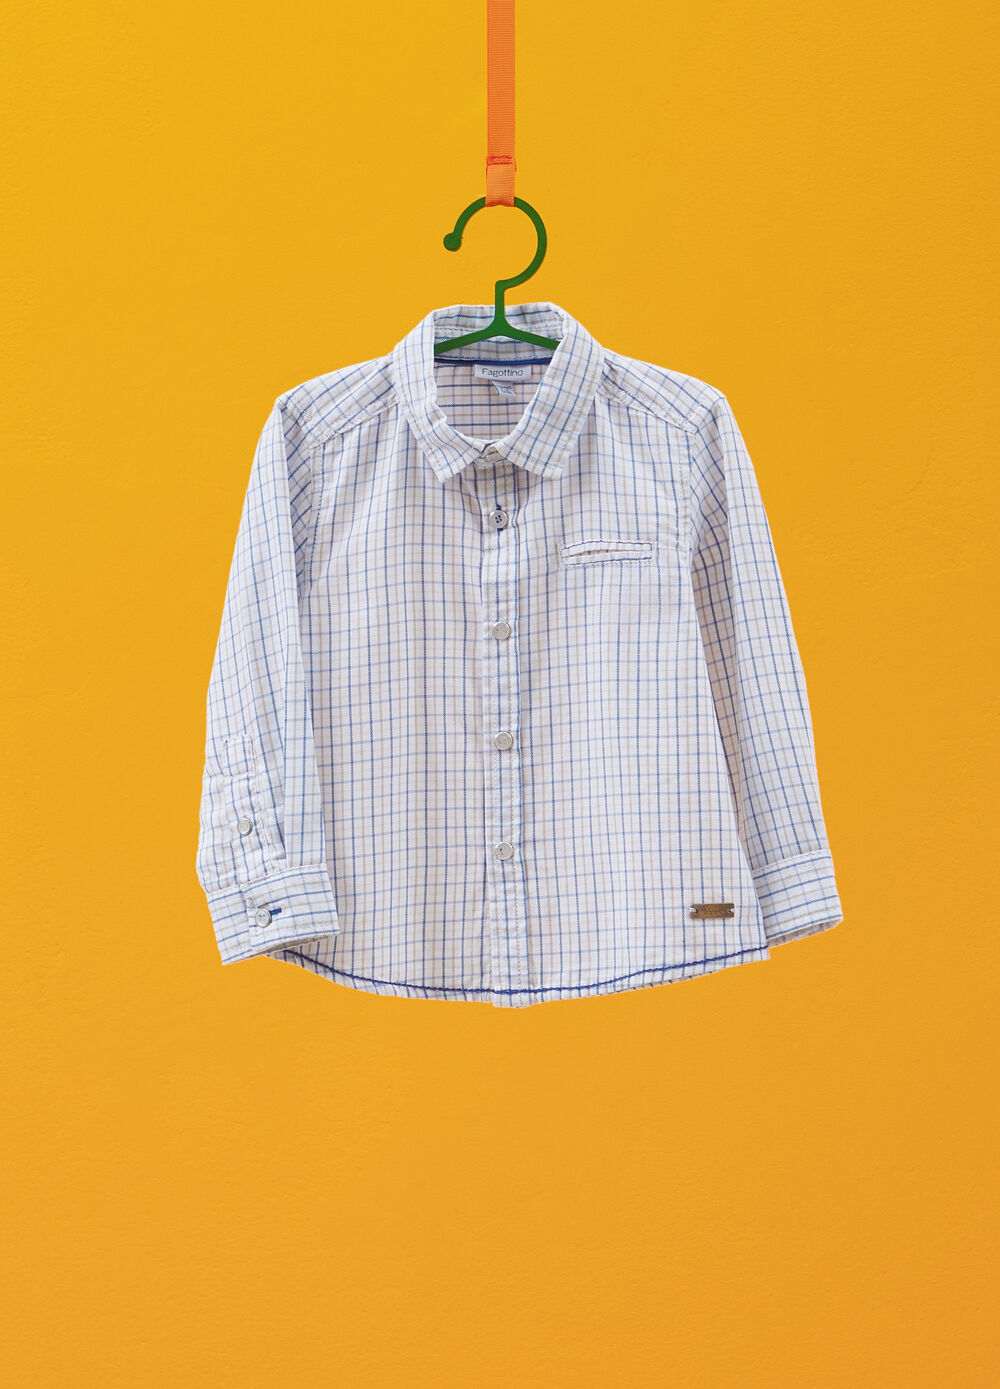 Cotton shirt with patches and cheks